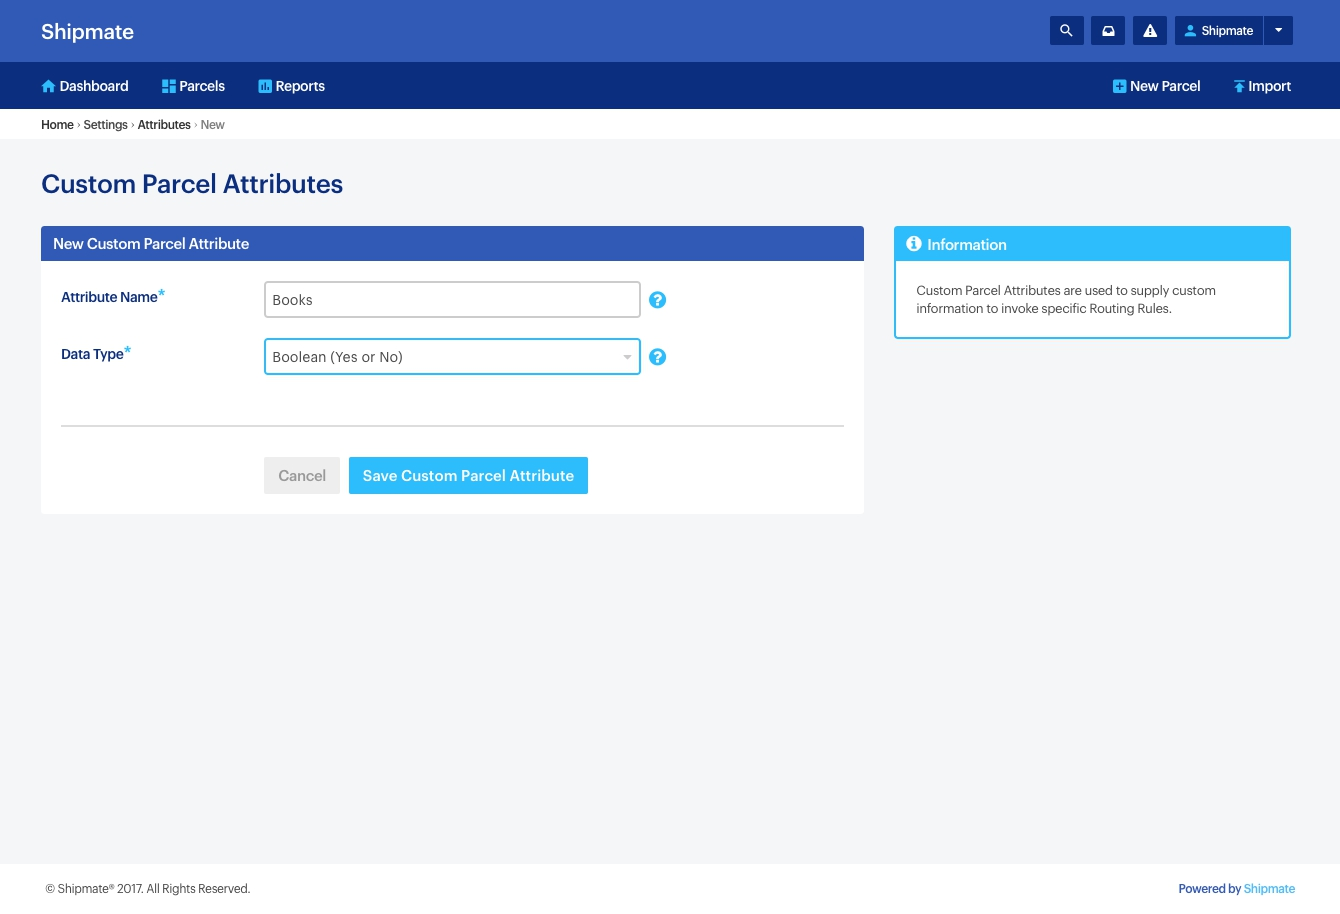 Shipmate - Your Account - Adding Custom Parcel Attributes